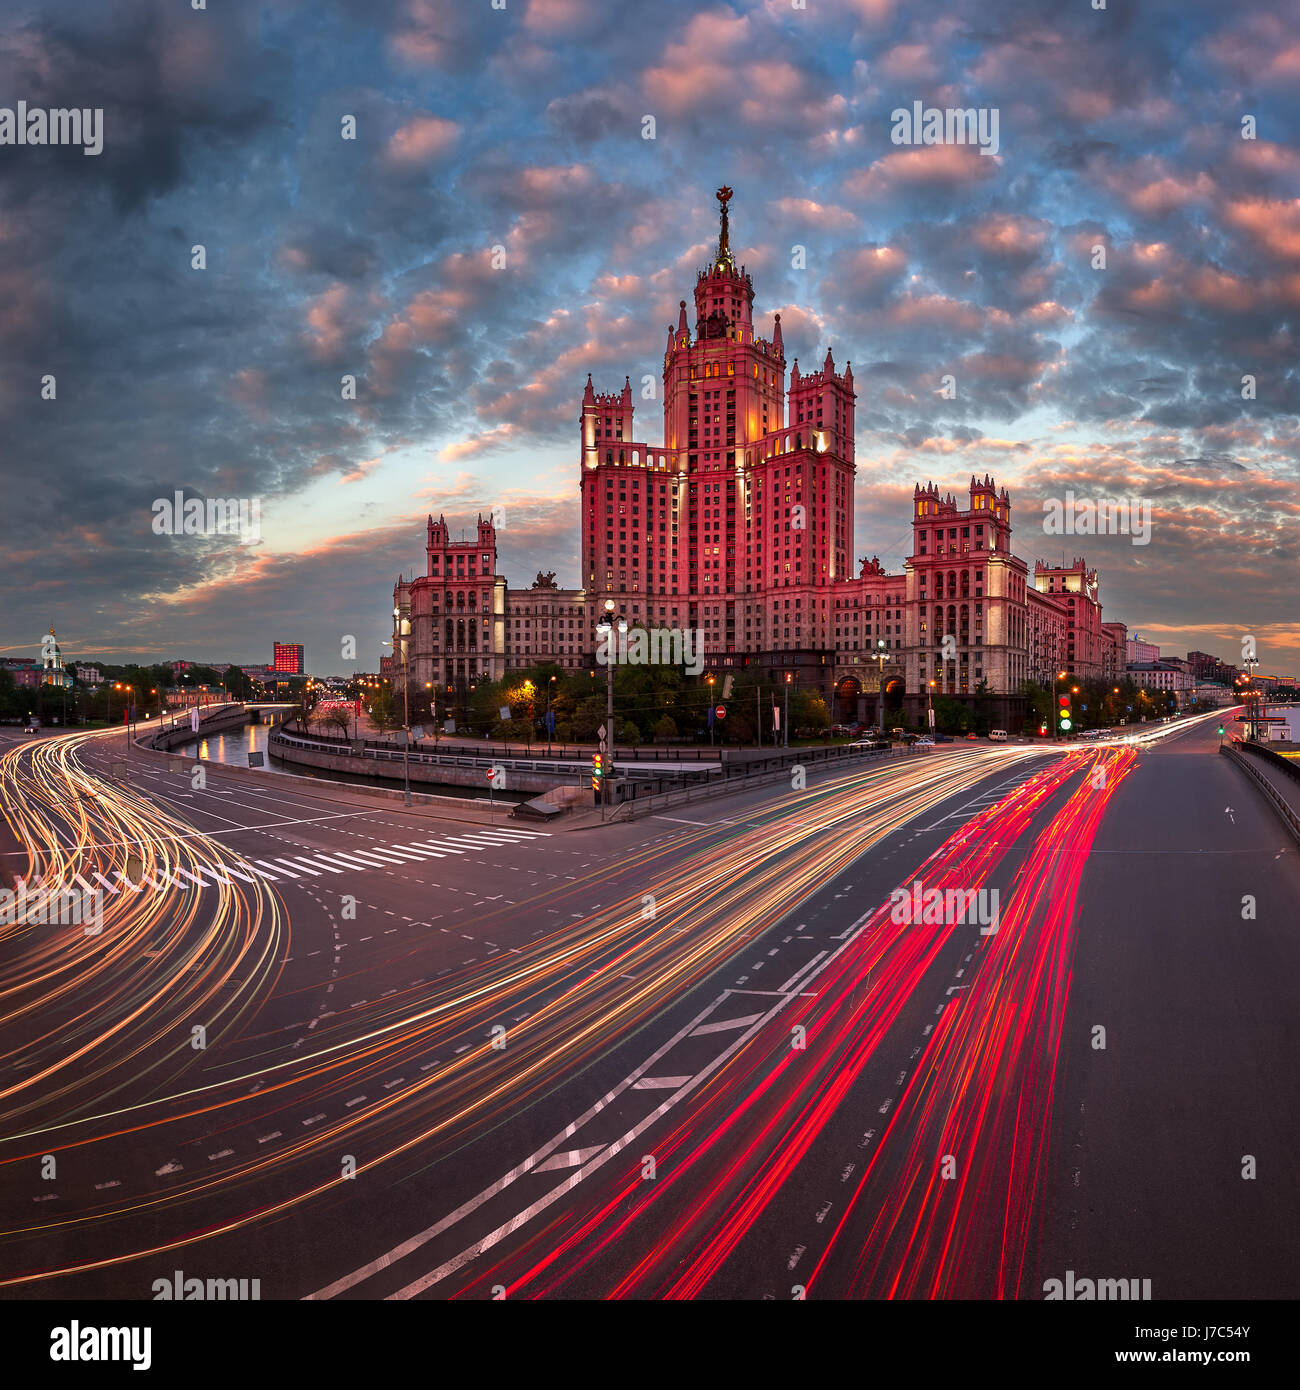 Kotelnicheskaya Embankment Building, One of the Moscow Seven Sisters in the Evening, Moscow, Russia Stock Photo